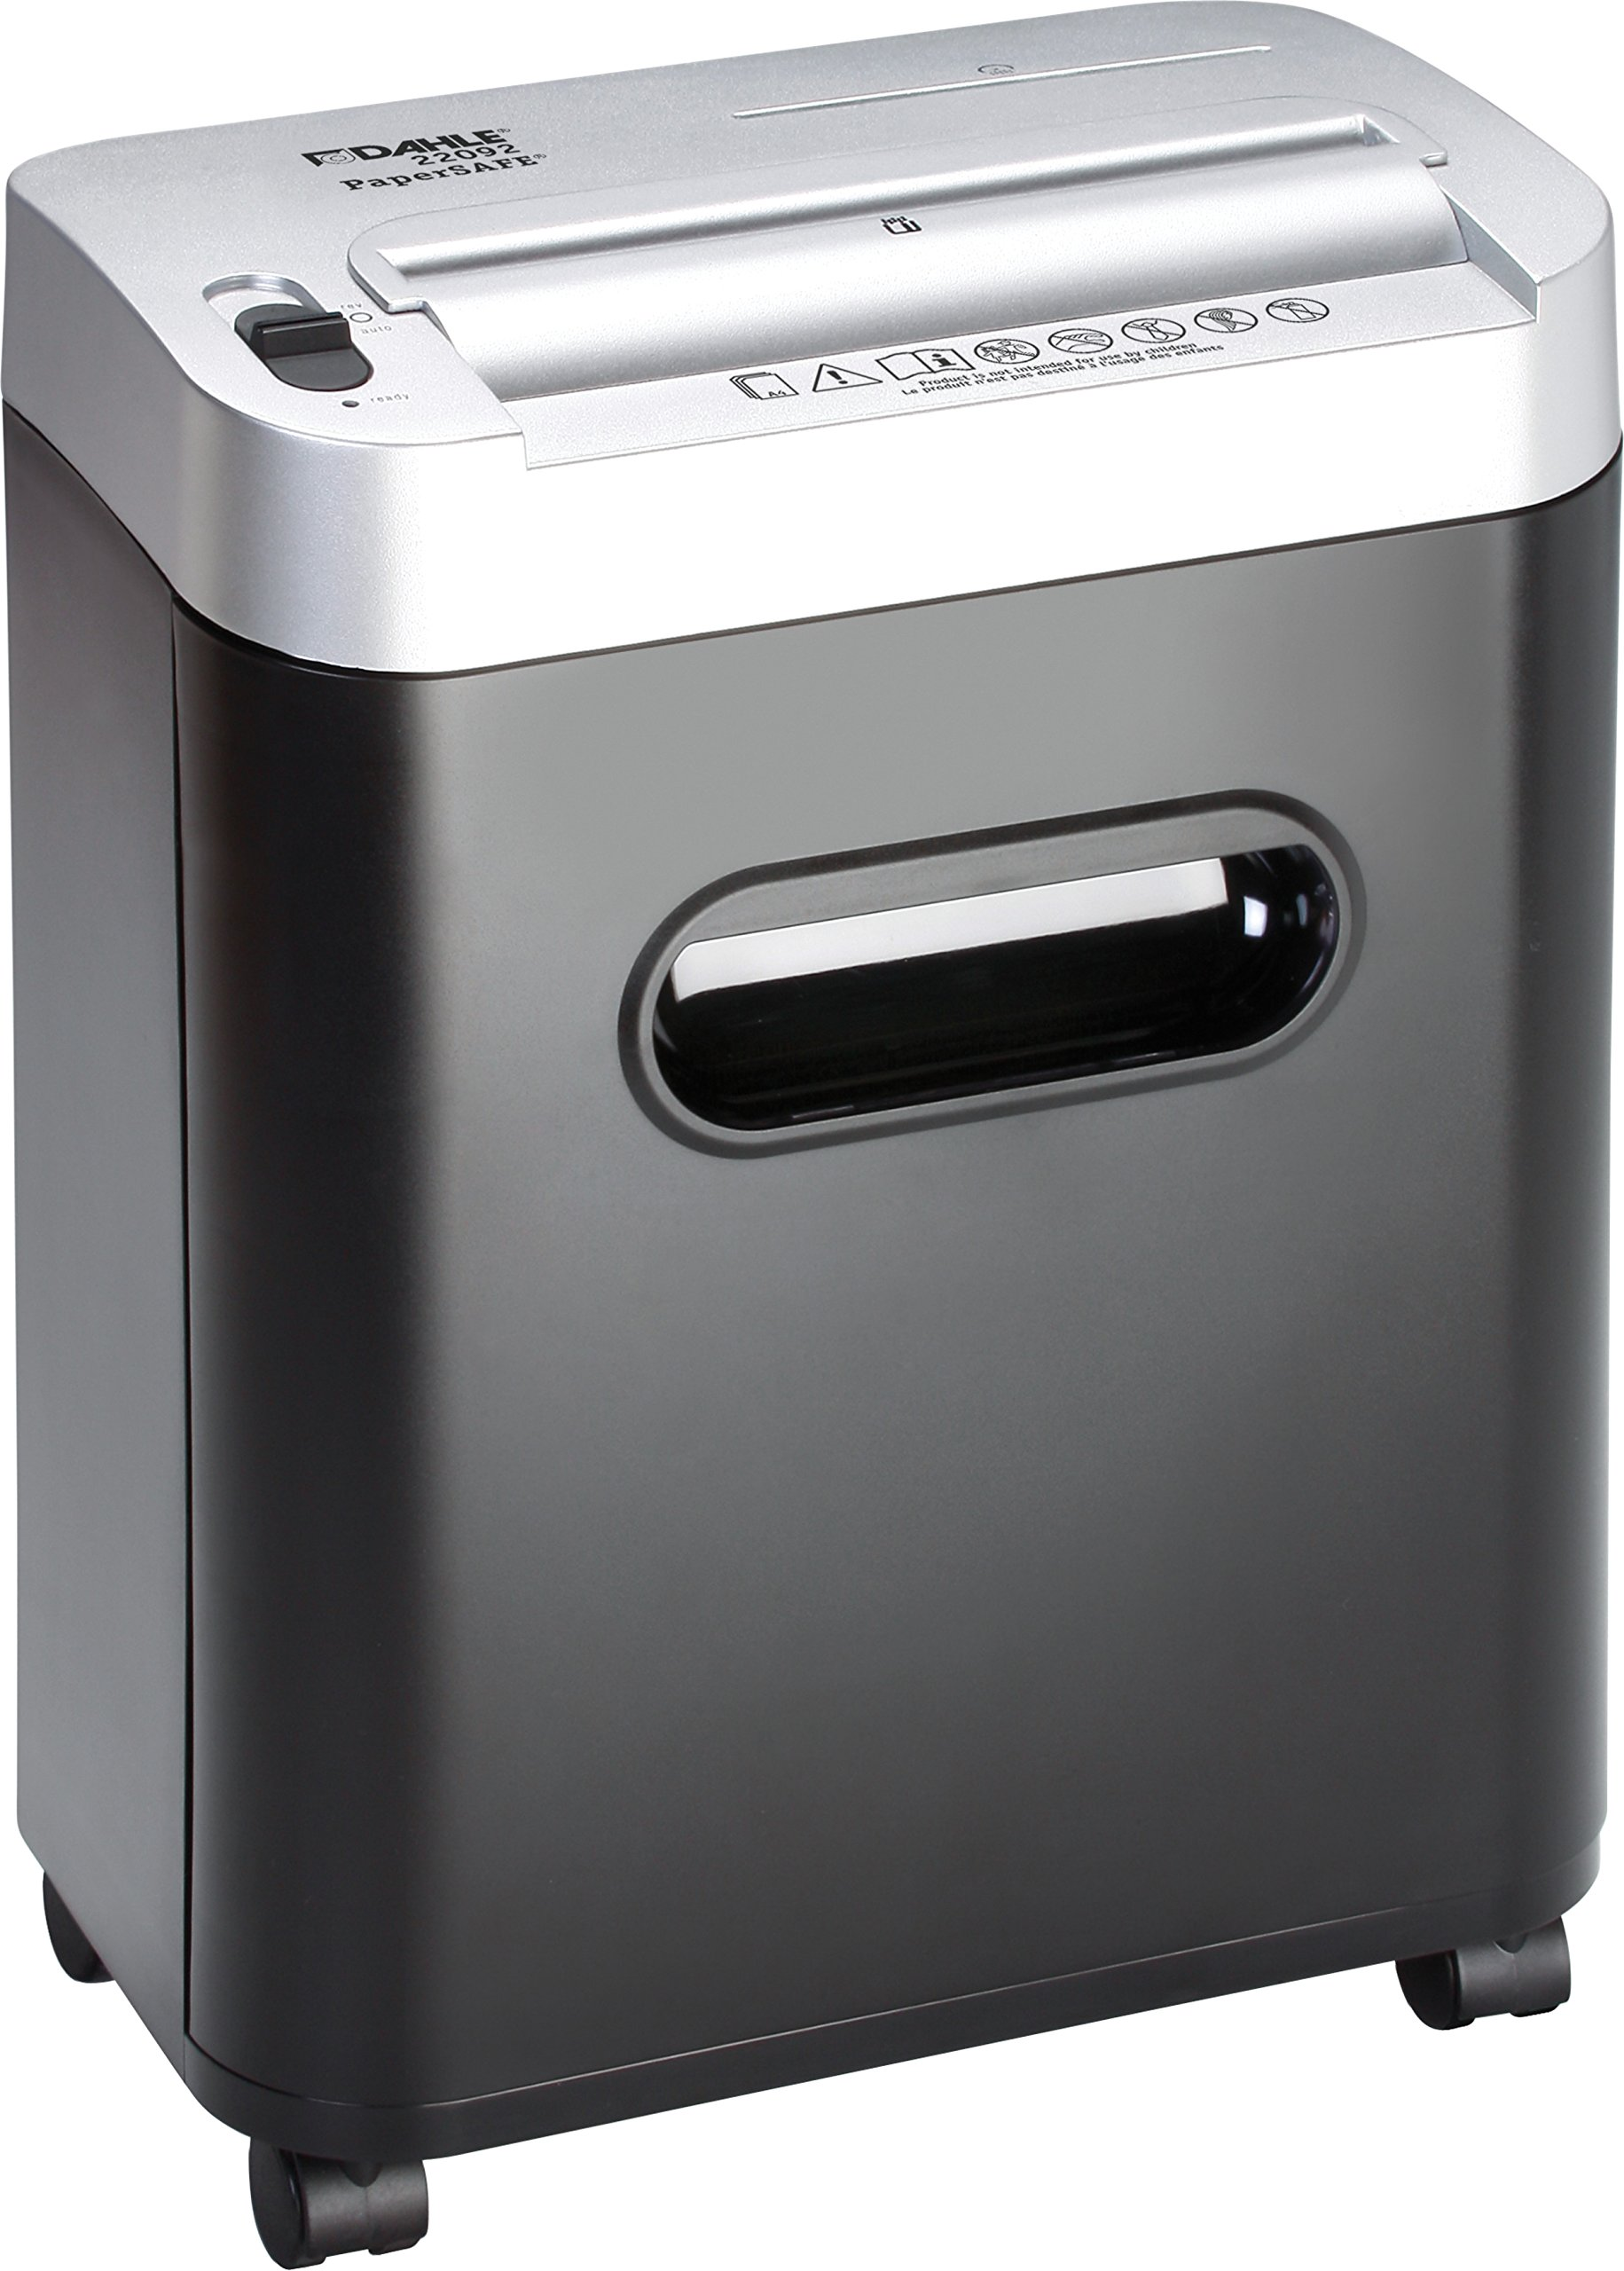 Dahle PaperSAFE 22092 Paper Shredder, Oil Free / Hassle Free, Security Level P-4, 10 Sheet Max, Shreds CDs, Credit Cards & Paper Clips